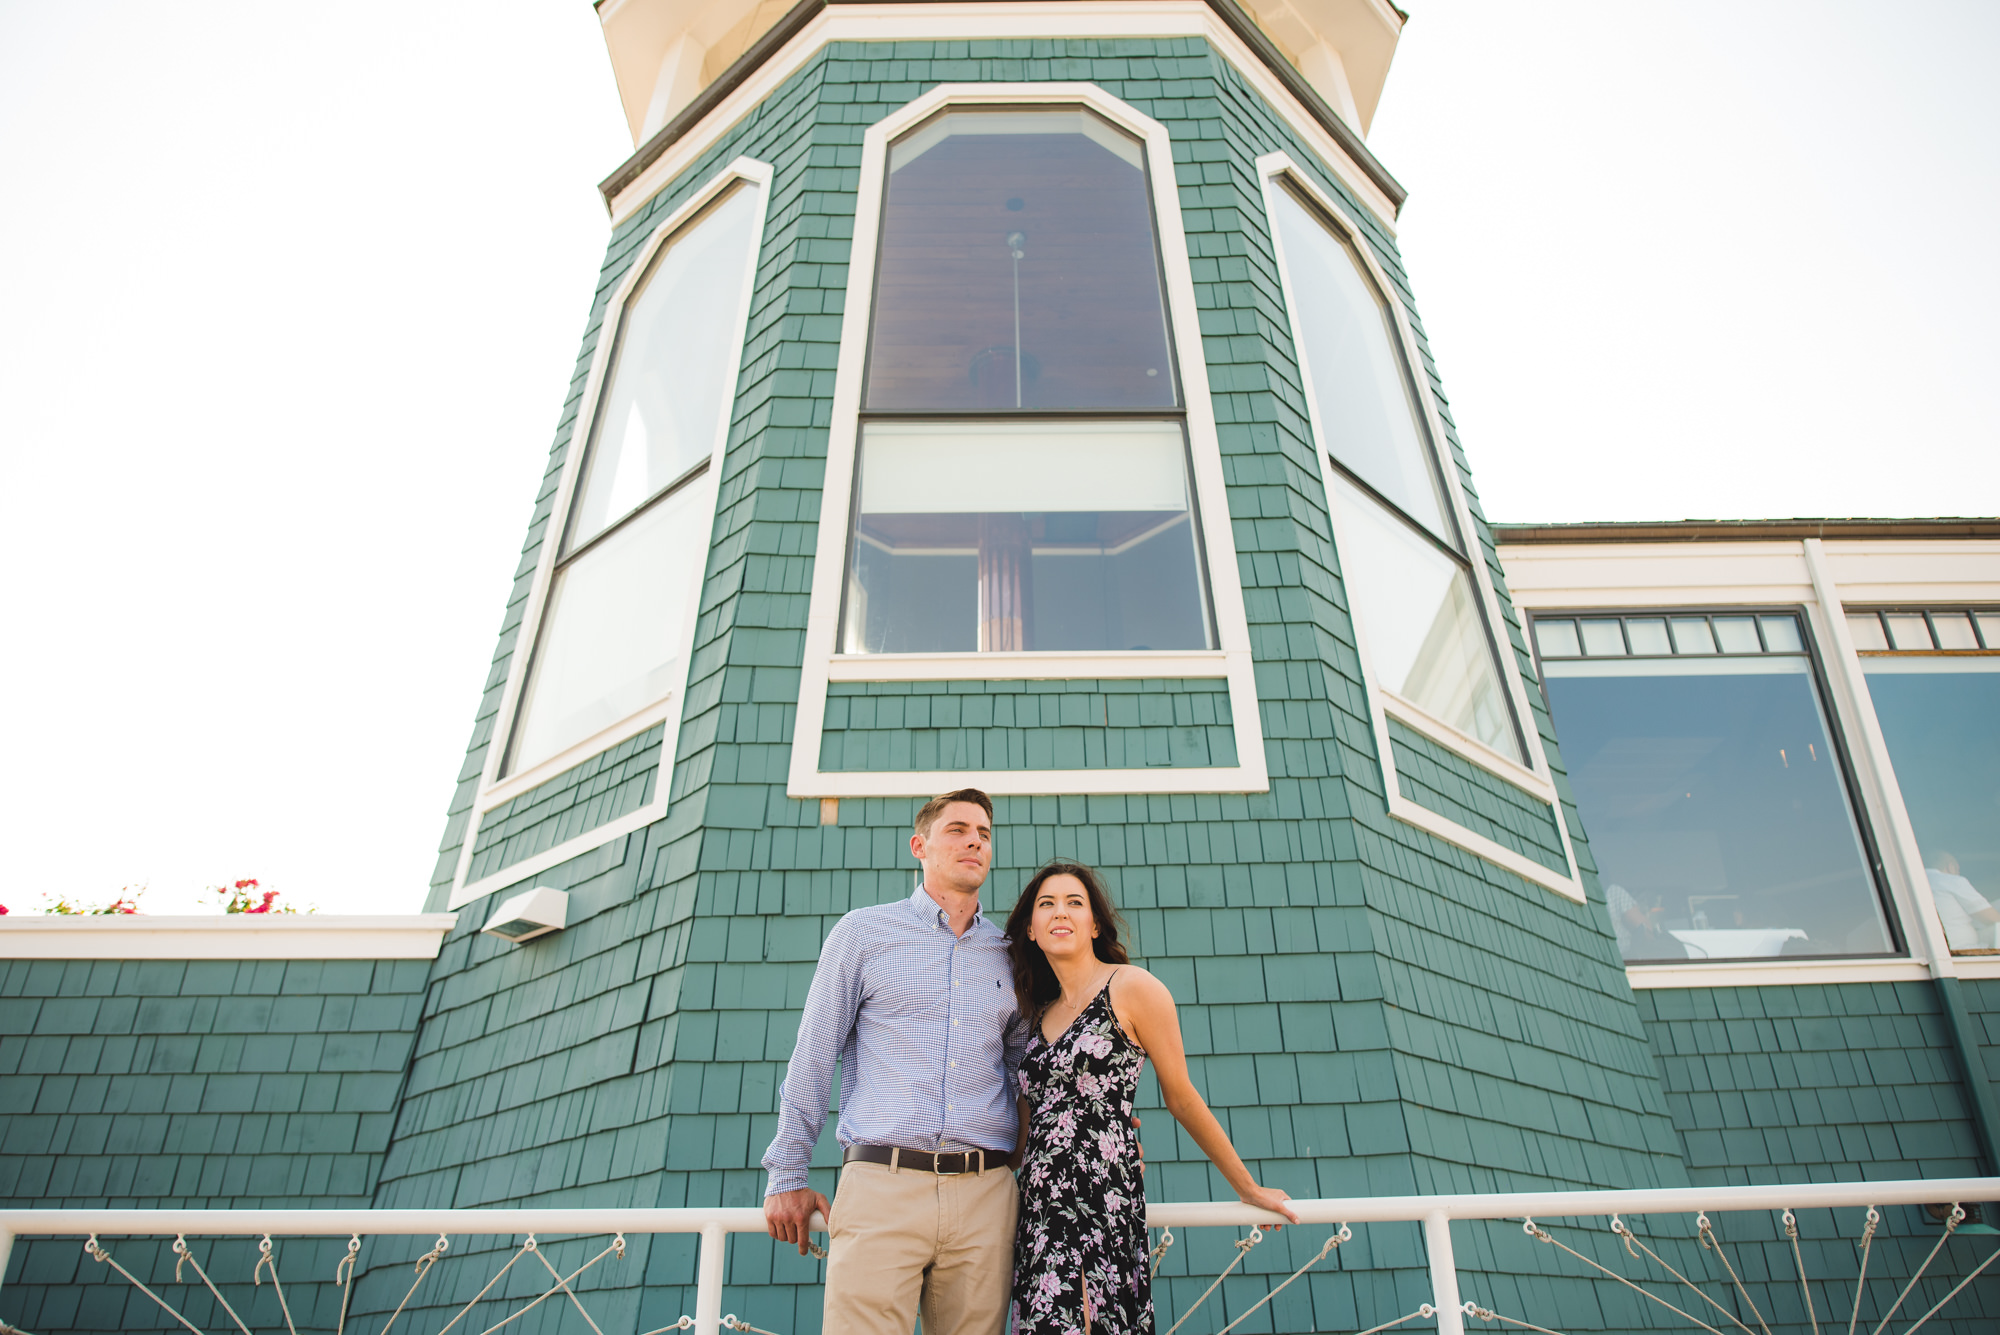 Alexandria-Old-Town-Elegant-Engagement-Pictures-by-Gabriele-Stonyte-Photography-4.jpg